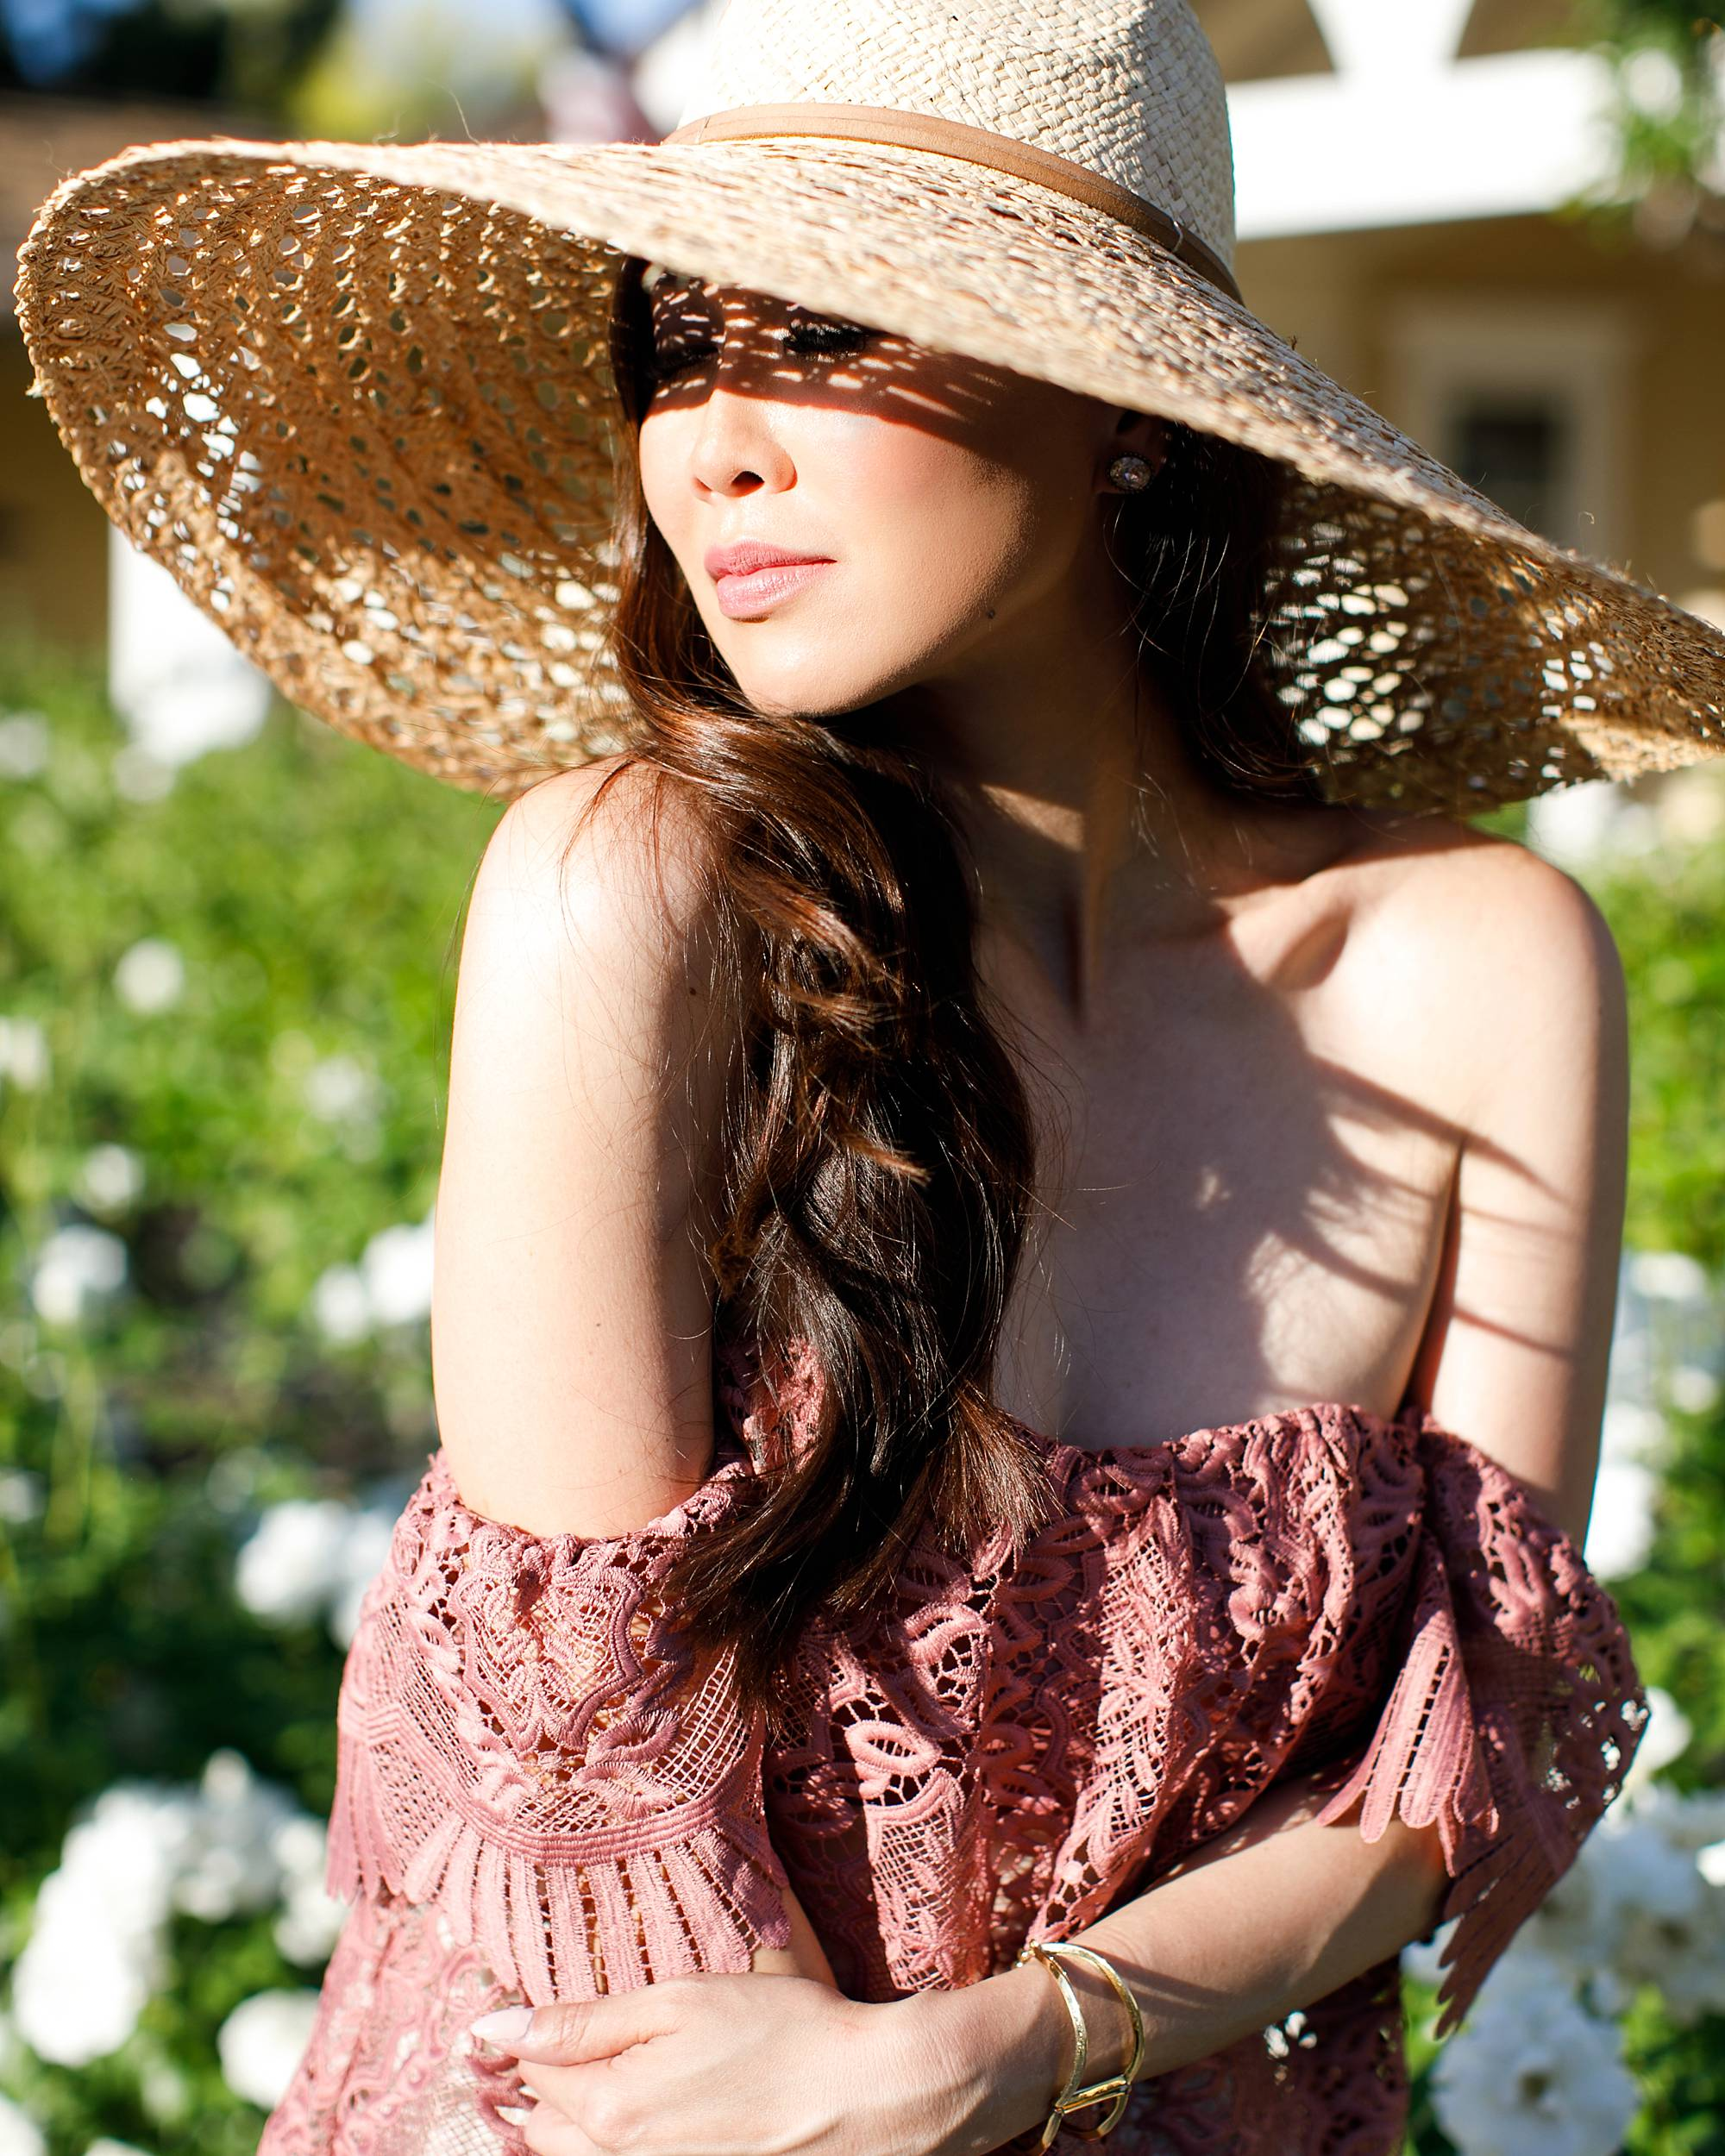 shadows lace off shoulder Parisian vibes large sunhat film portrait lifestyle blogger Diana Elizabeth by Jennifer Bowen Photography in roses phoenix